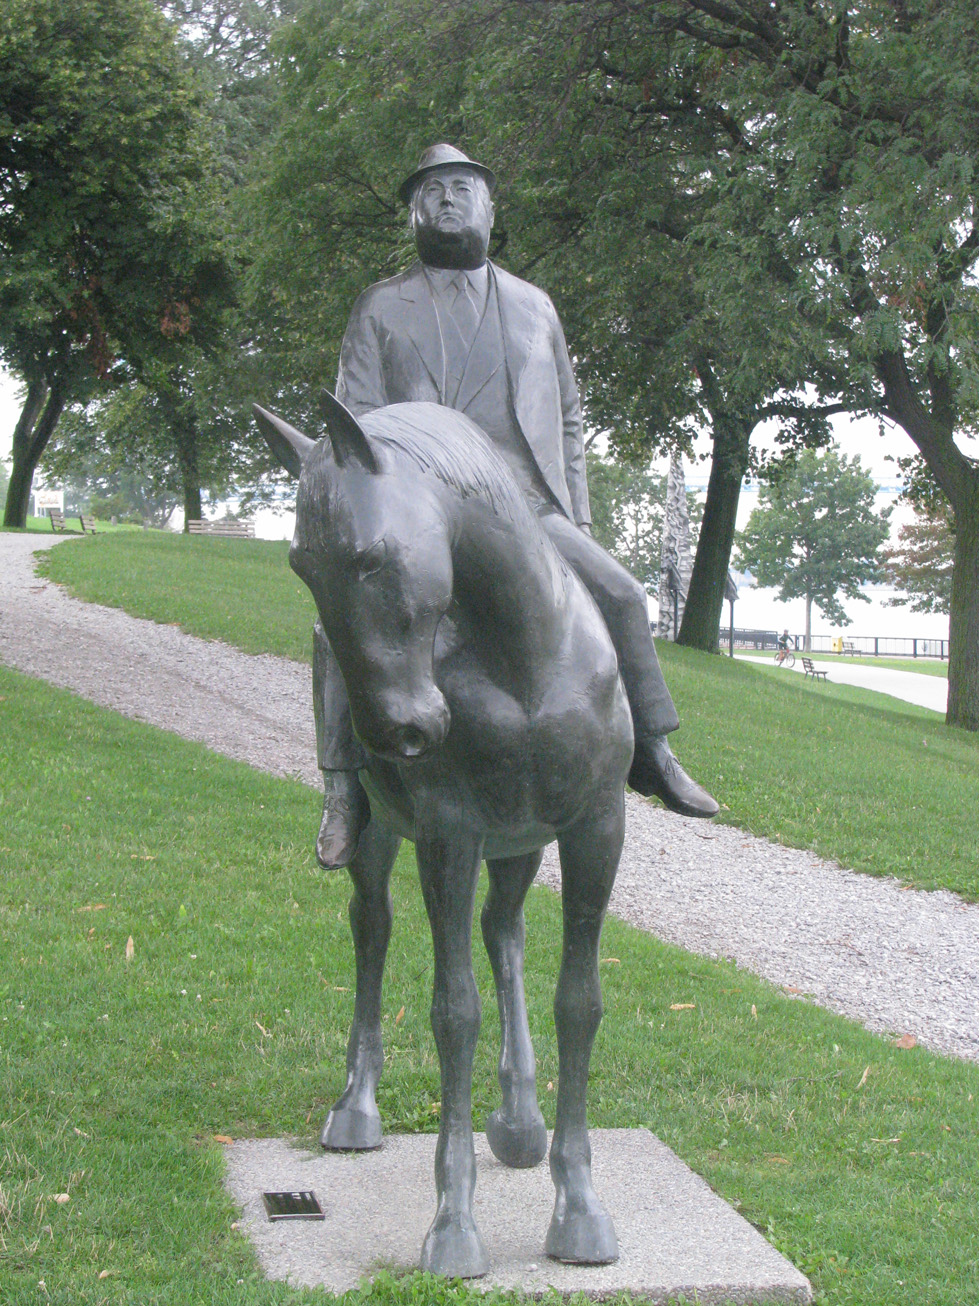 Business%20Man%20on%20a%20Horse%20sculpture%20in%20the%20Windsor%20Sculpture%20Park